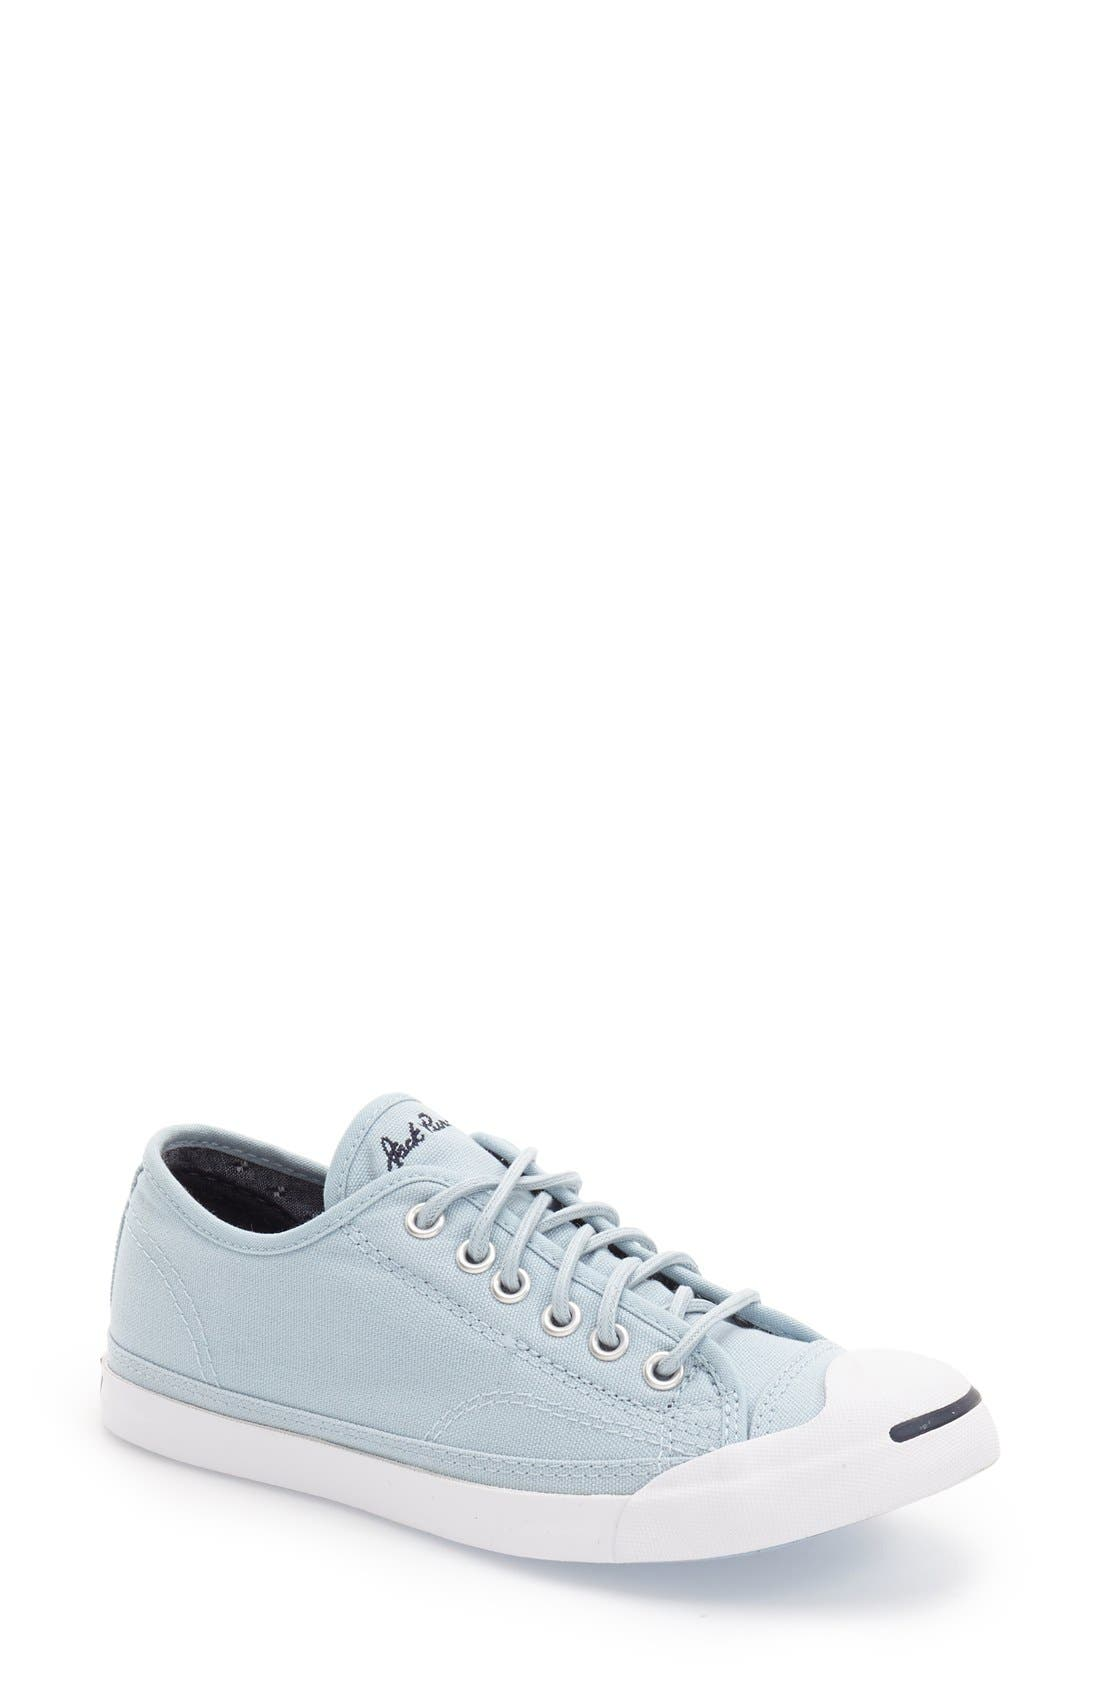 'Jack Purcell' Sneaker, Main, color, 457